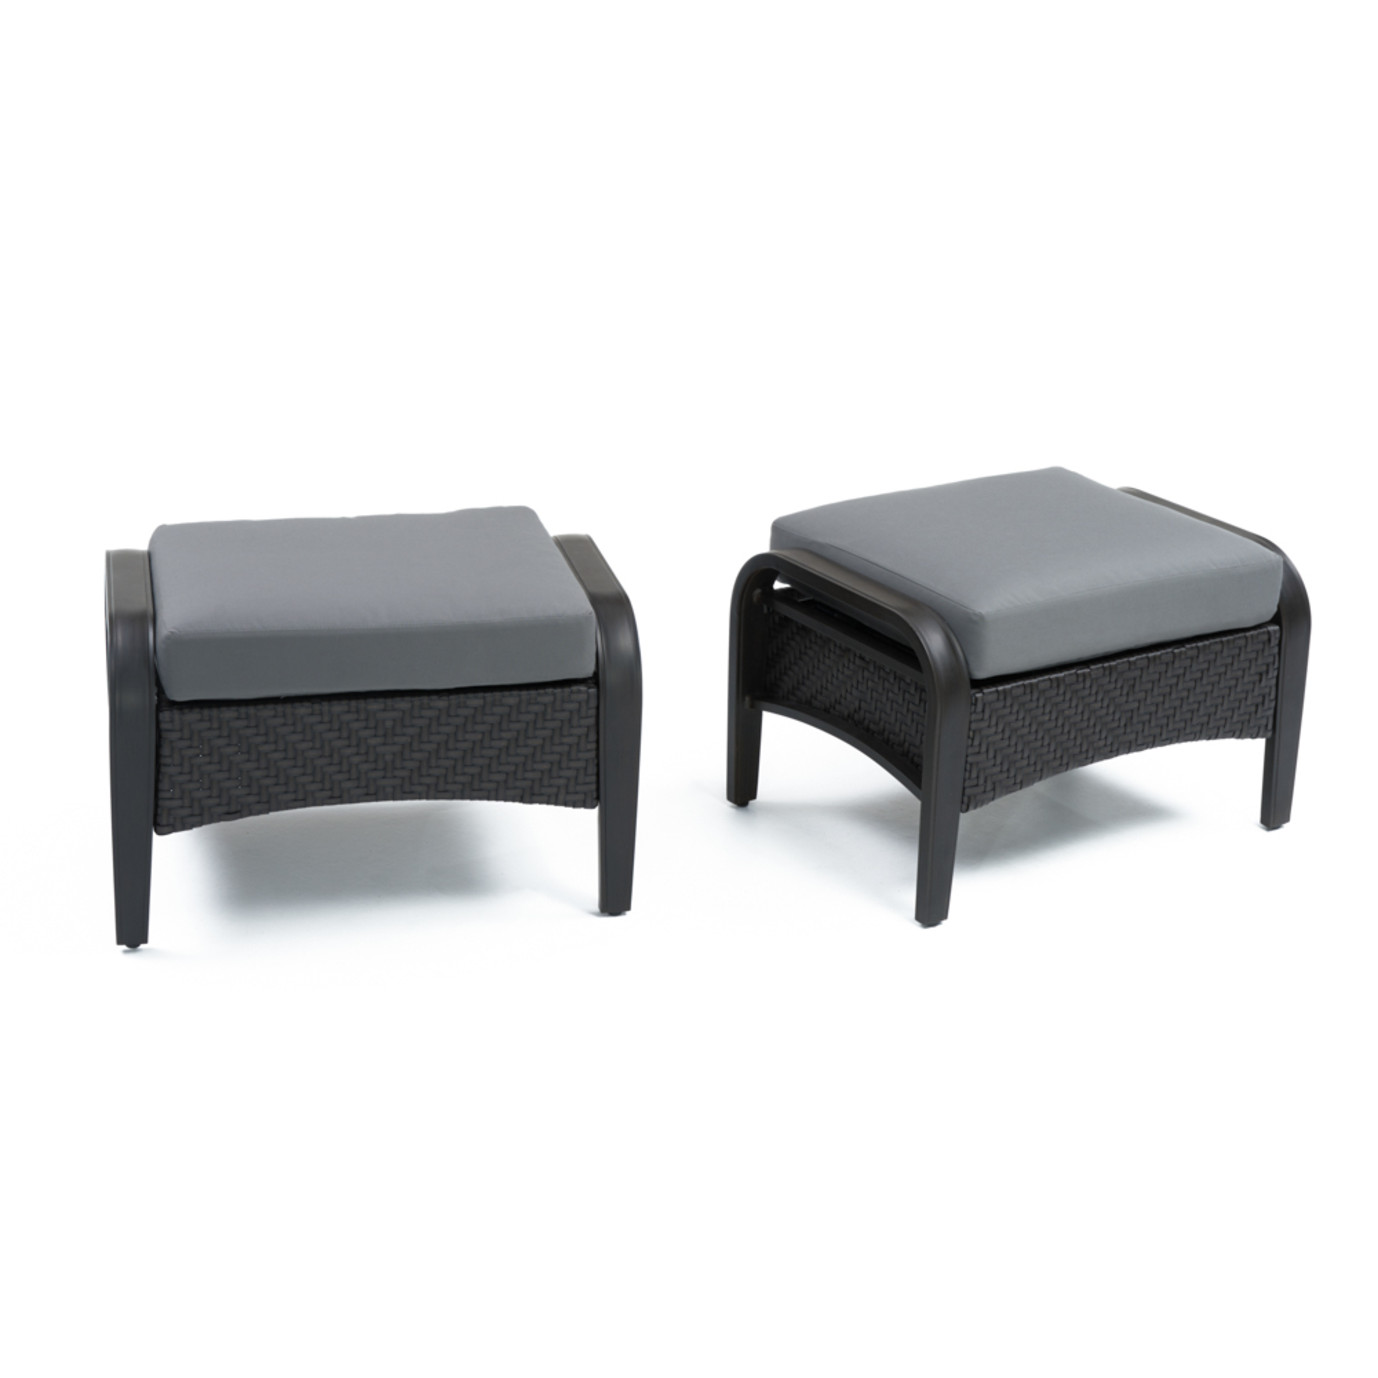 Barcelo™ Club Ottomans - Charcoal Gray